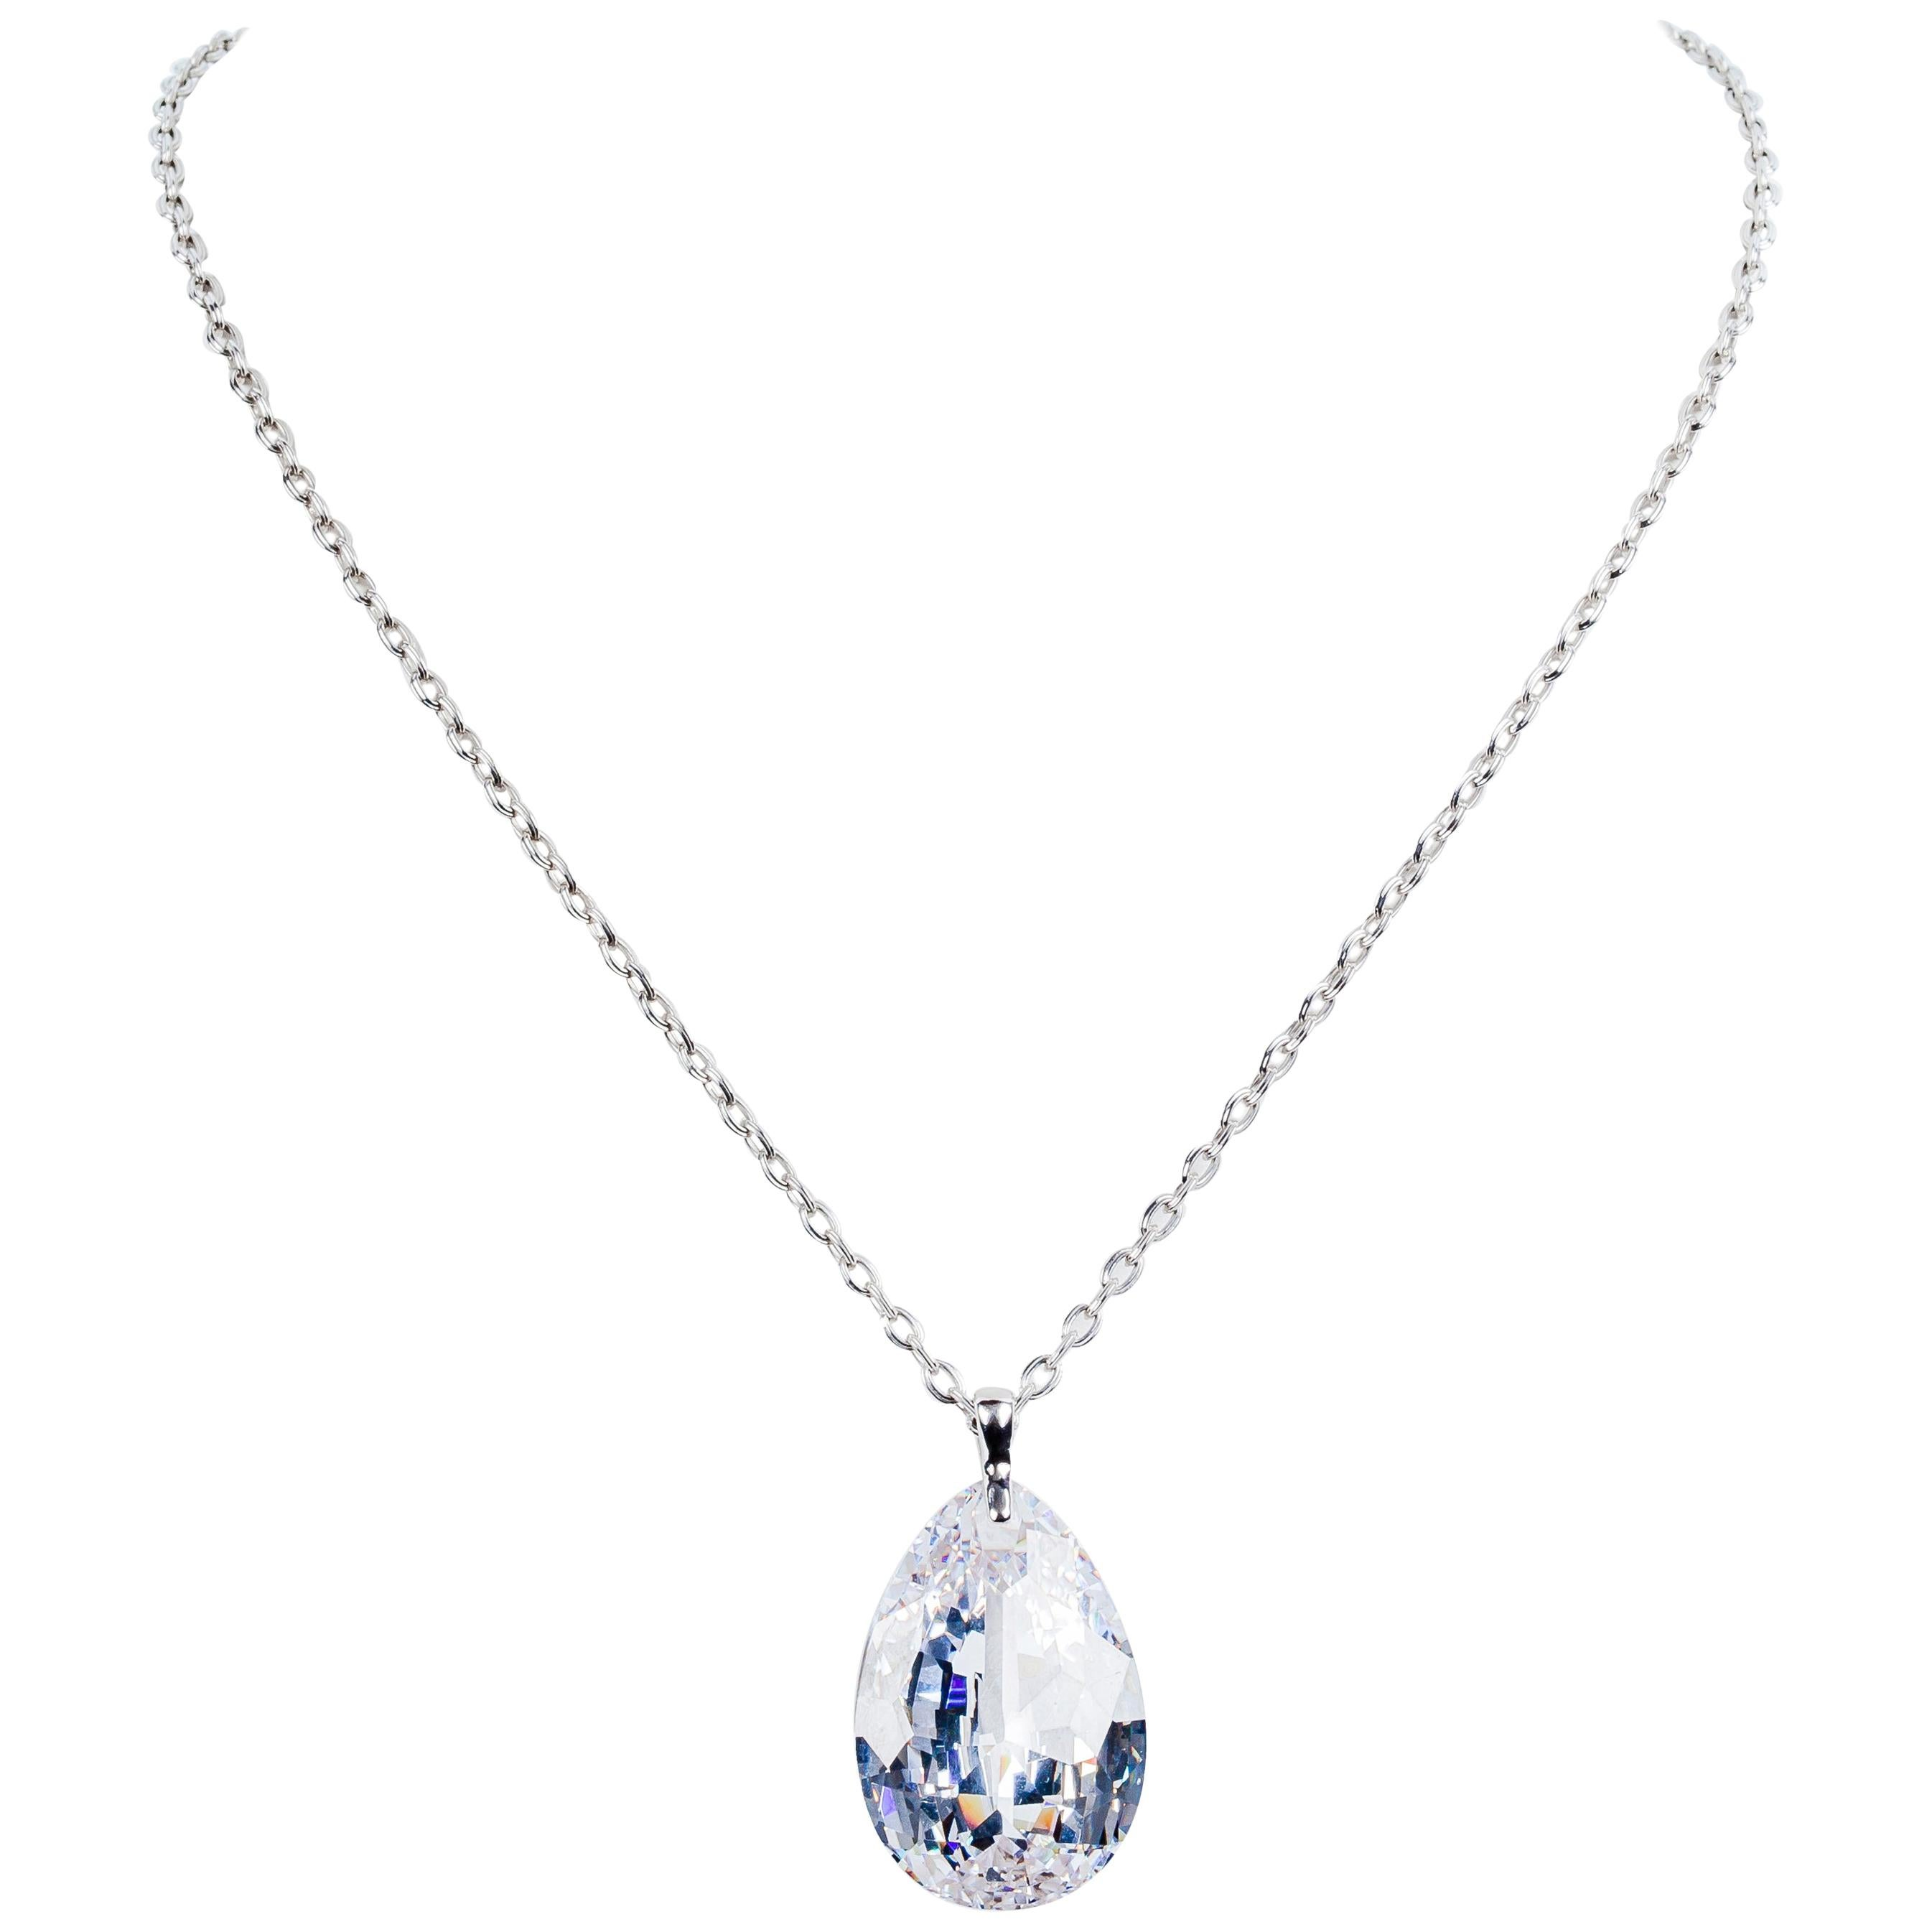 Link Necklace in White Gold with Faceted Treated Crystal Drop Motif